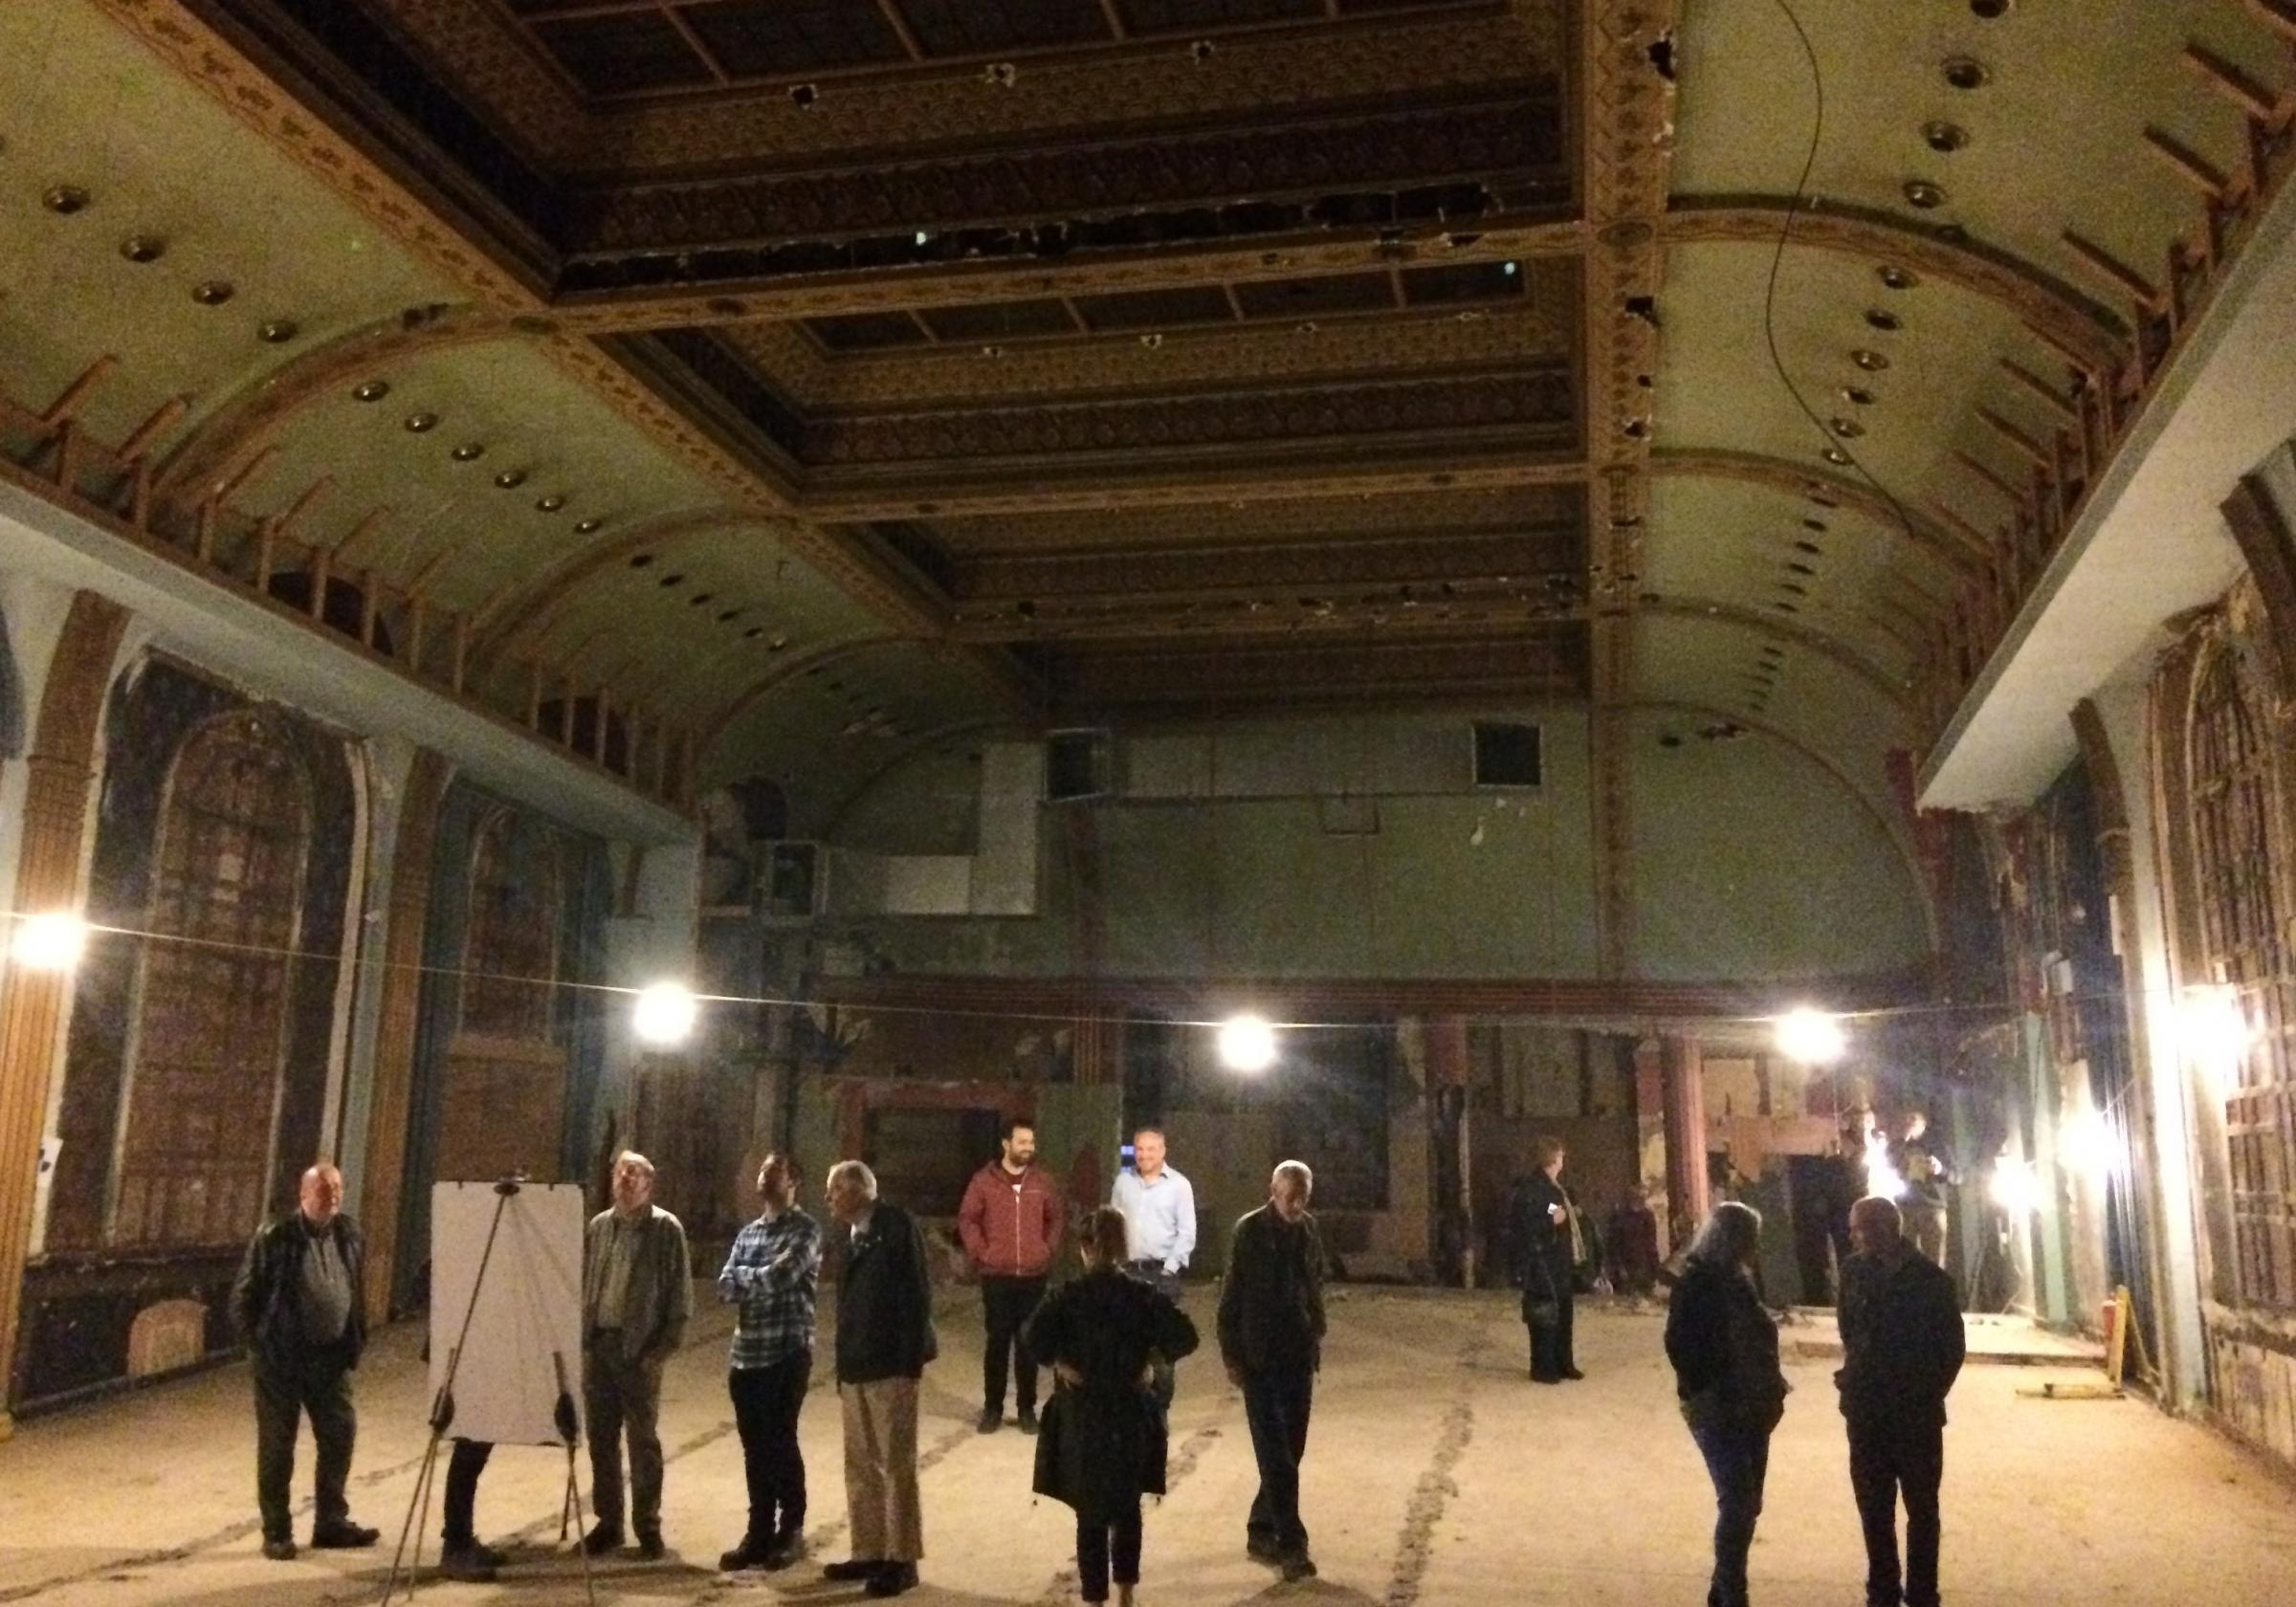 Bradford Telegraph and Argus: Bradford Civic Society members in the ballroom during their guided tour of the site